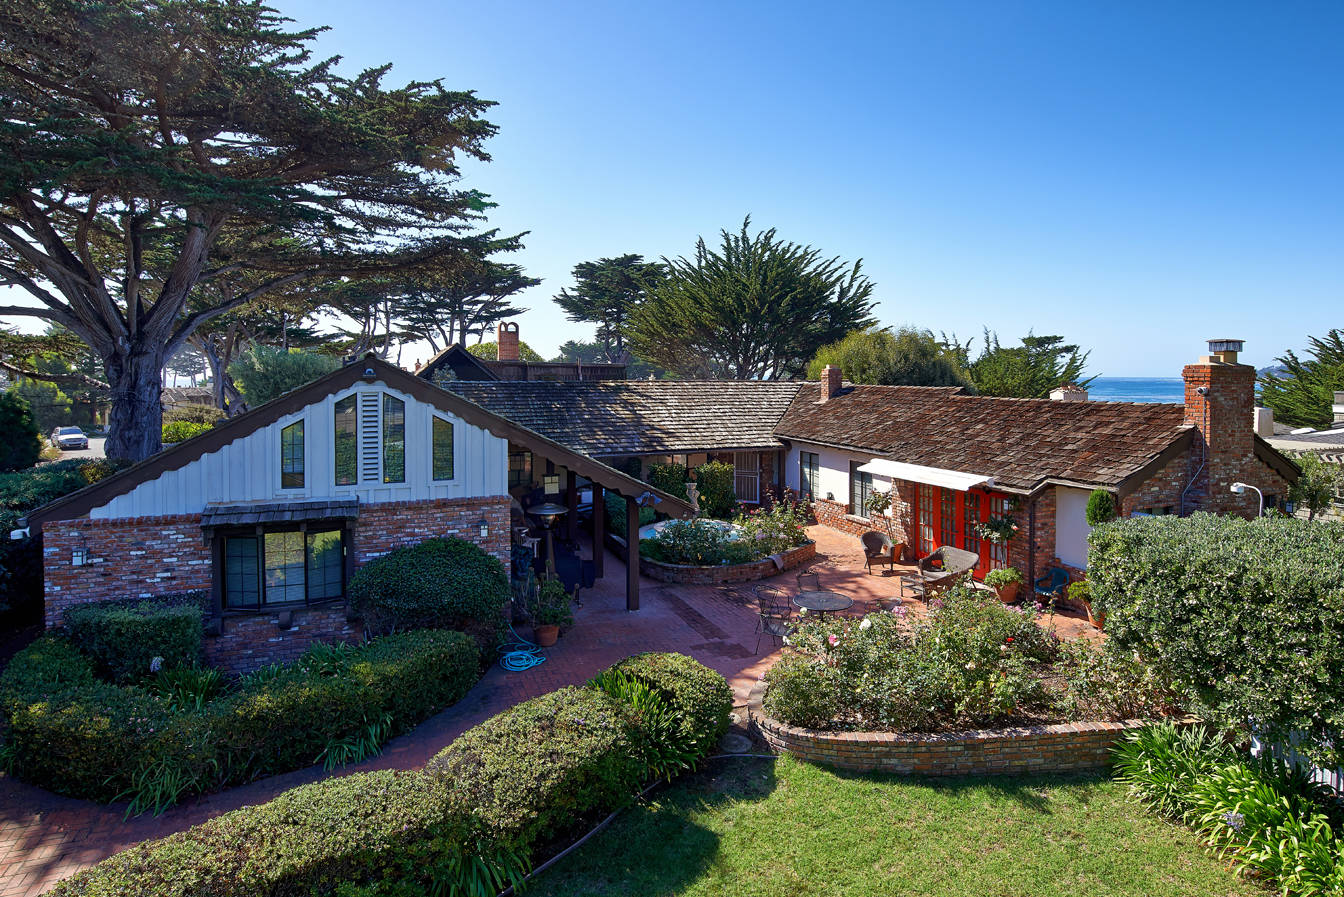 Carmel point comstock cottage for sale in carmel ca for Carmel house